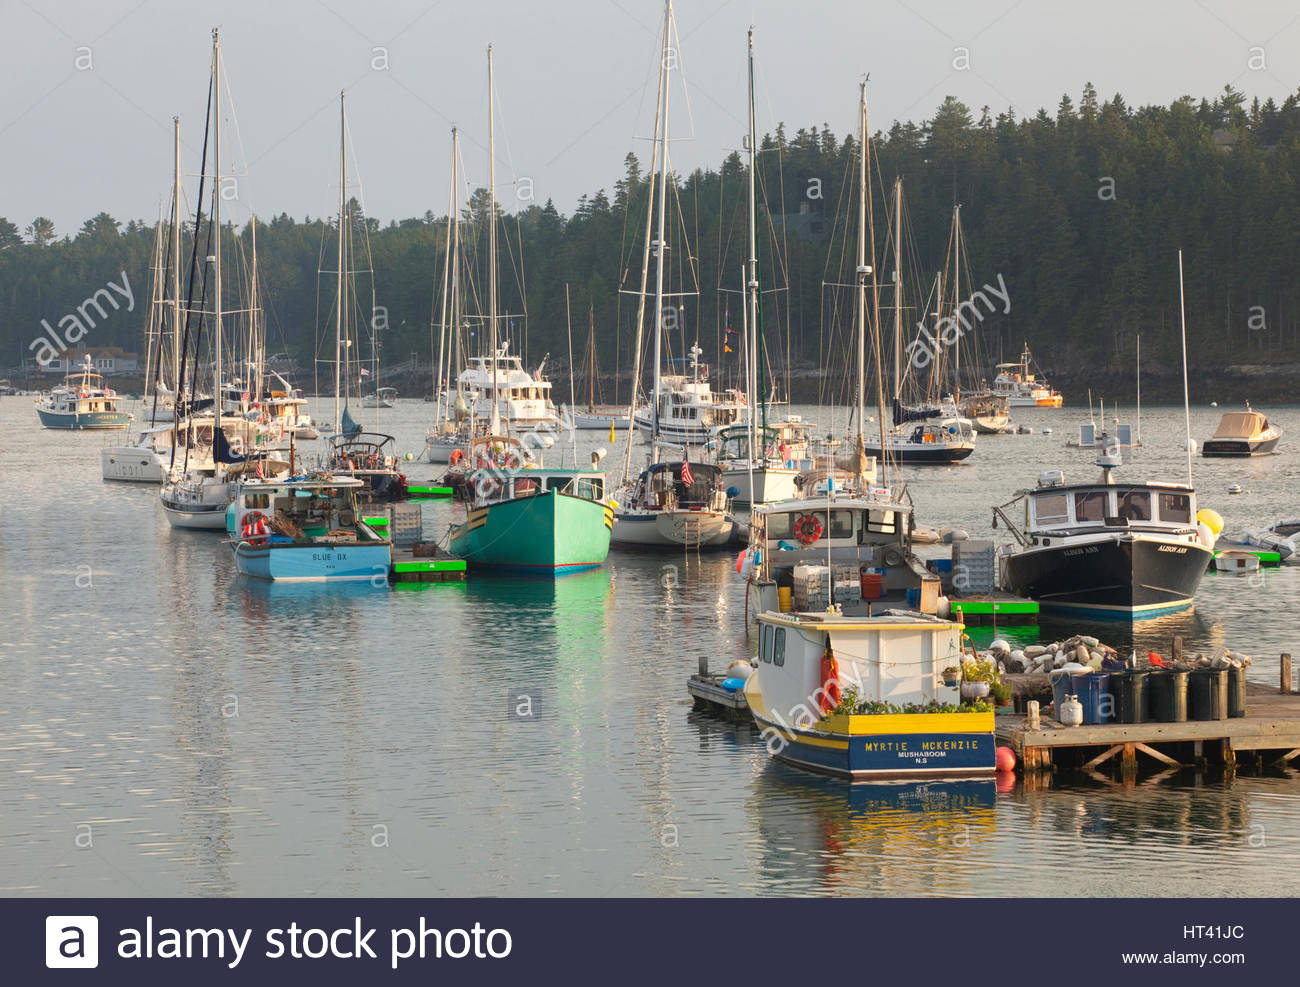 0902-1014  Lobster boats and sailboats in Northeast Harbor, Mt. Desert Island, Maine. - Stock Image